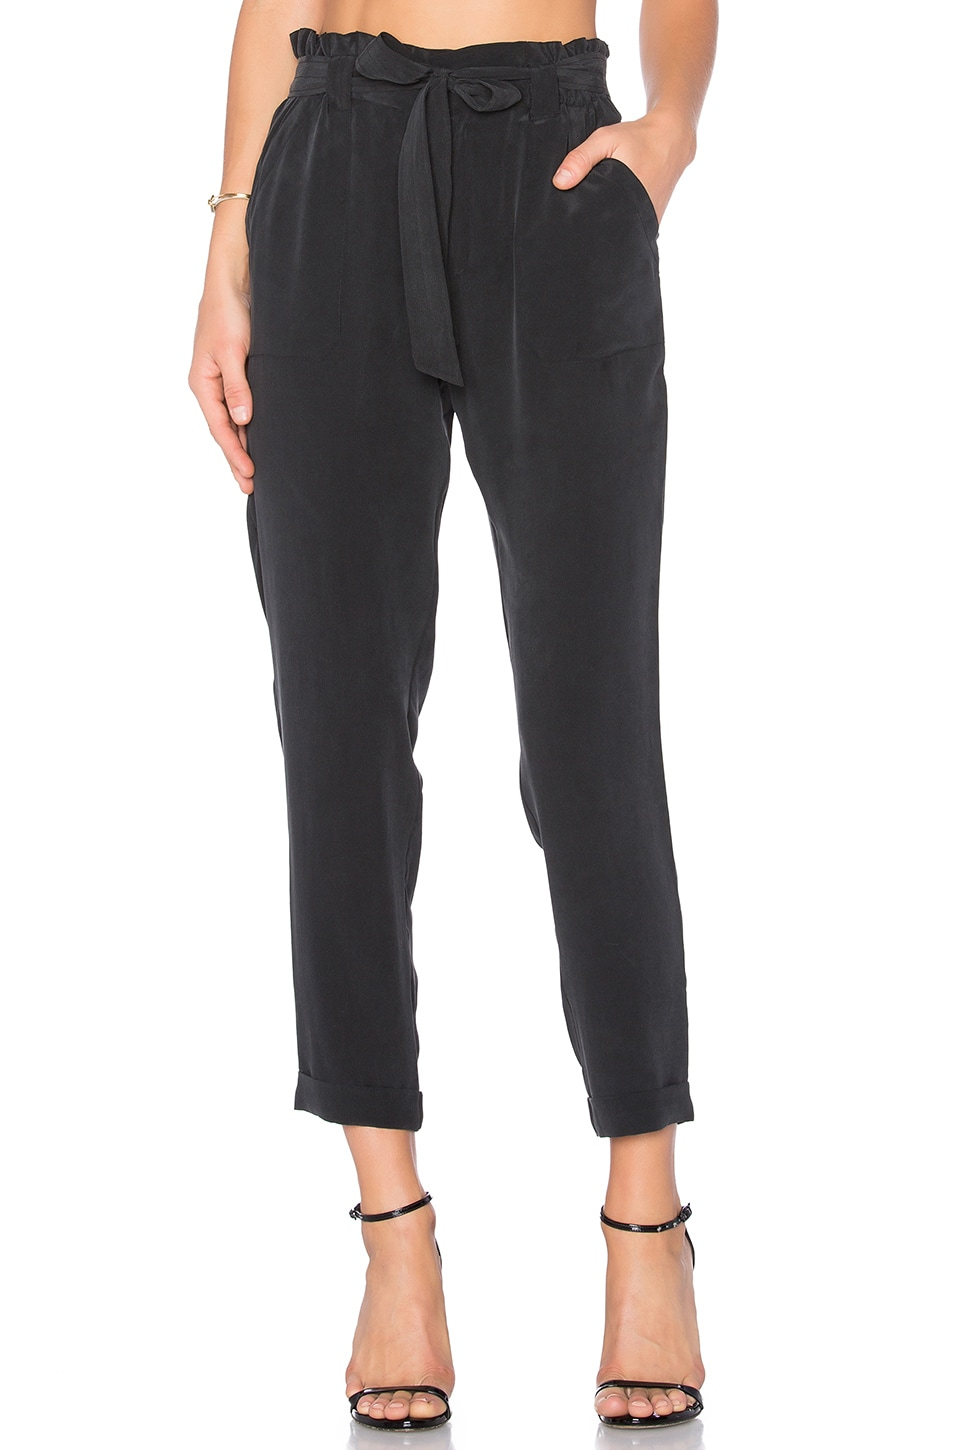 Joie Asuka Pant in Vintage Caviar